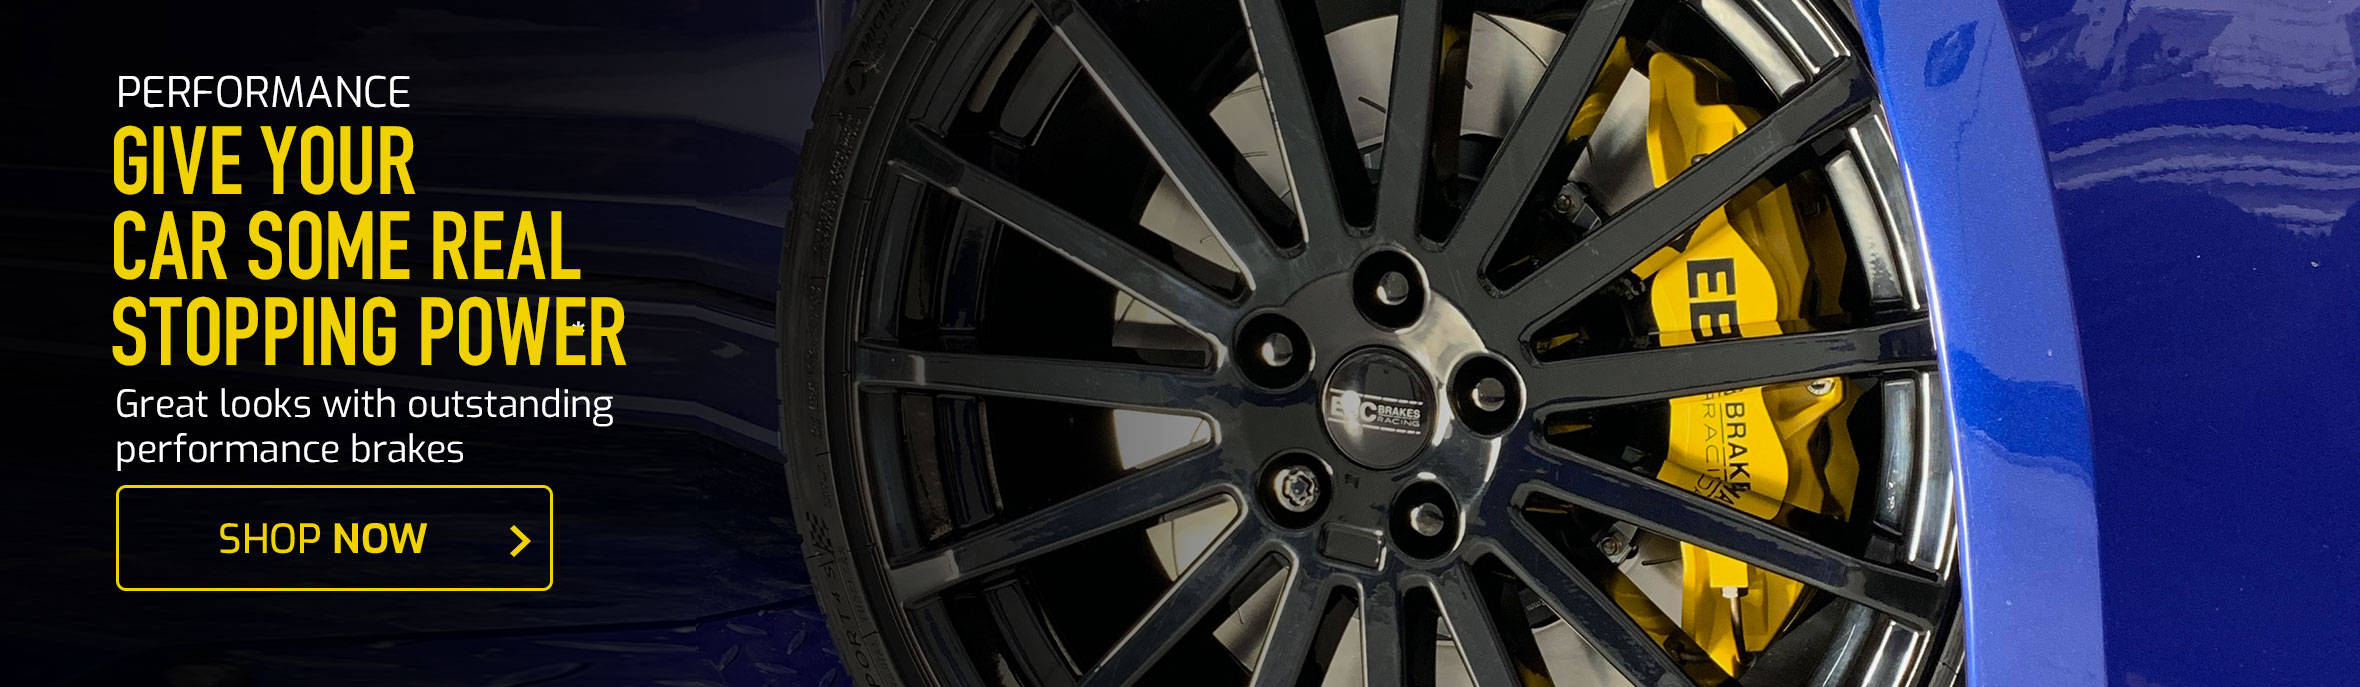 Give your car some real stopping power